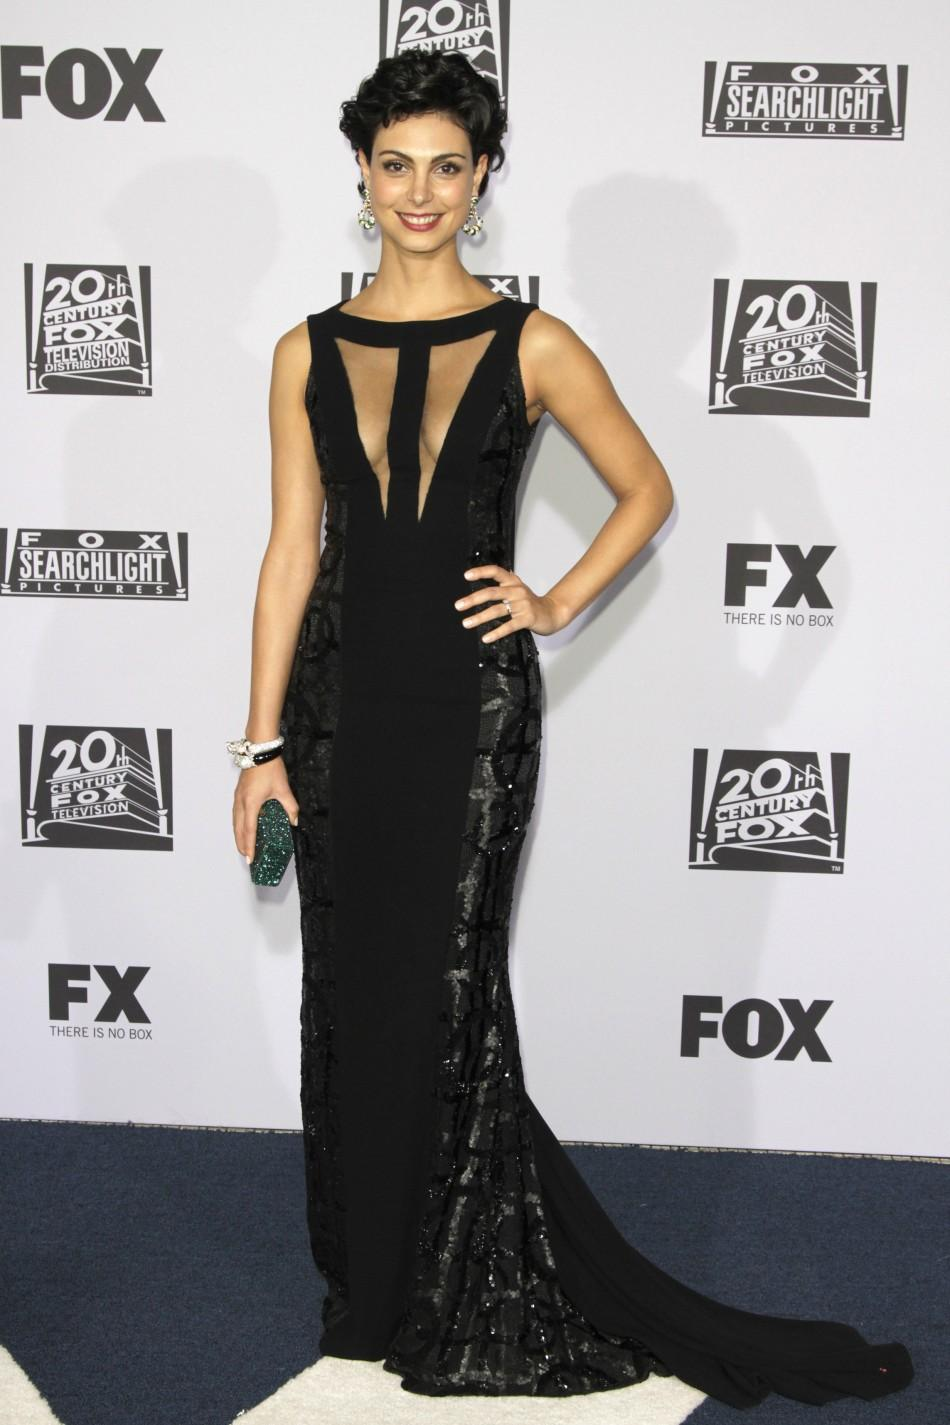 Actress Morena Baccarin arrives at the FOX after party at the 69th annual Golden Globe Awards in Beverly Hills, California